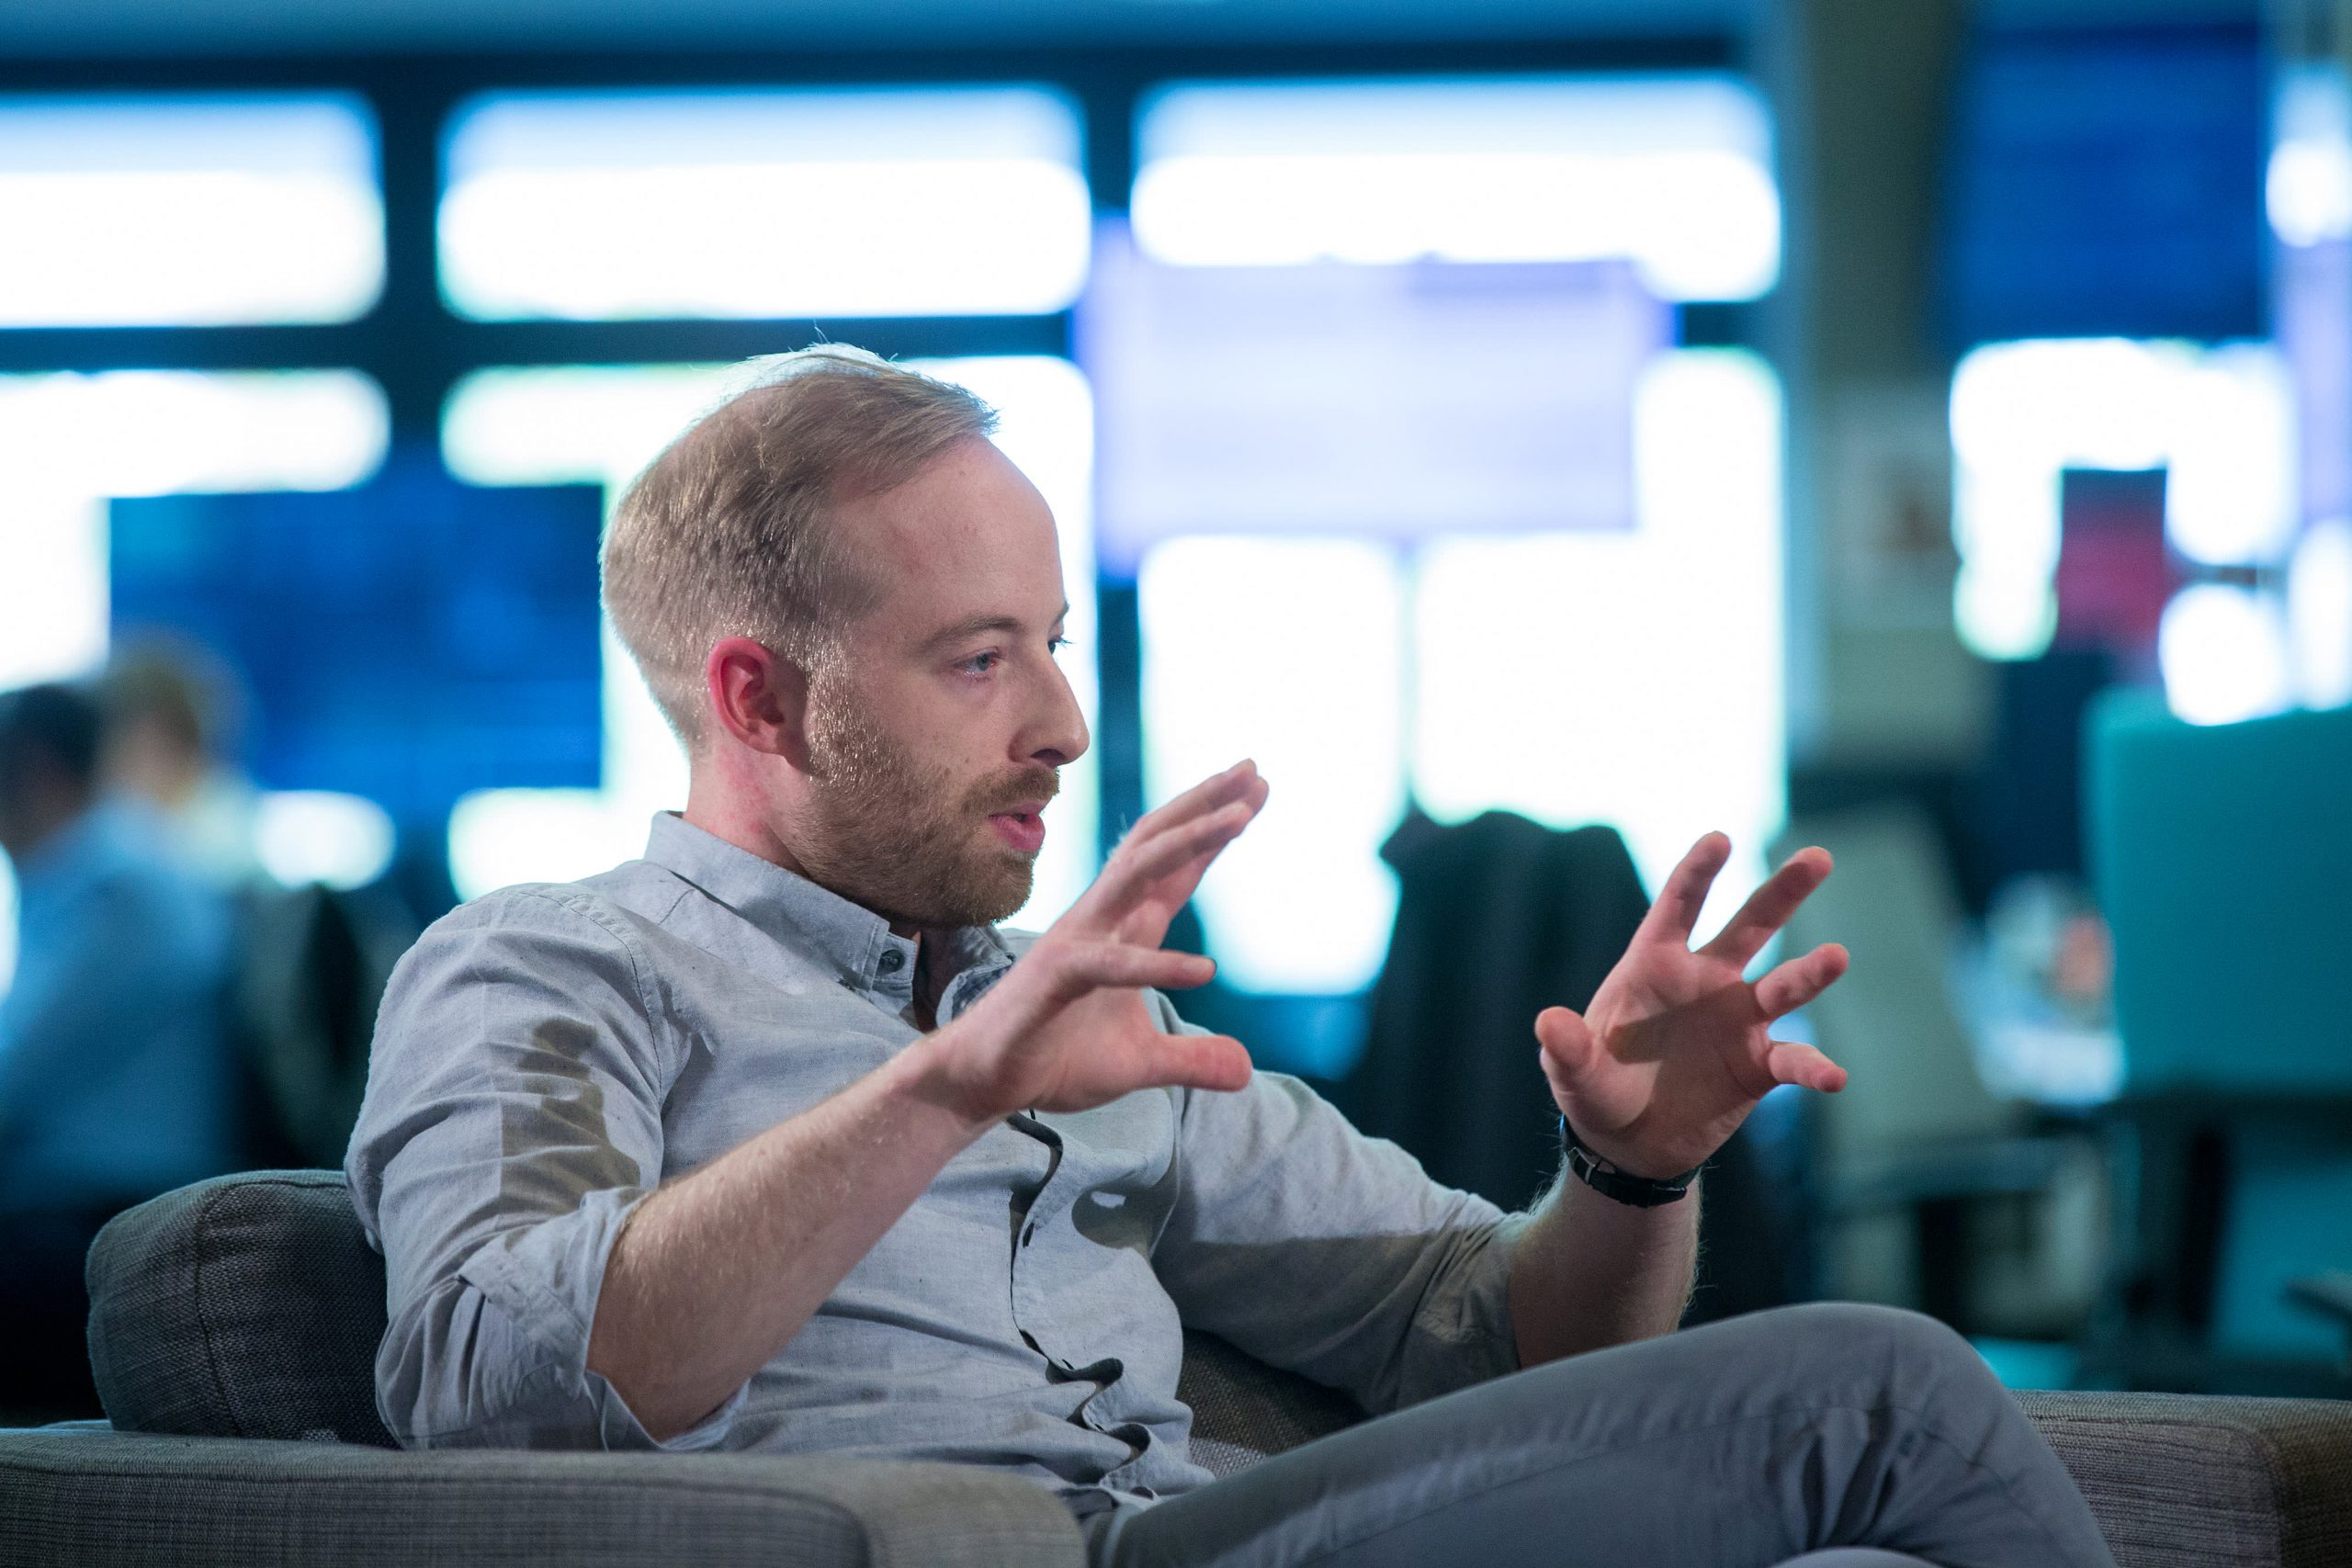 zalando-co-ceo-to-stop-says-its-time-to-prioritize-spouses-profession